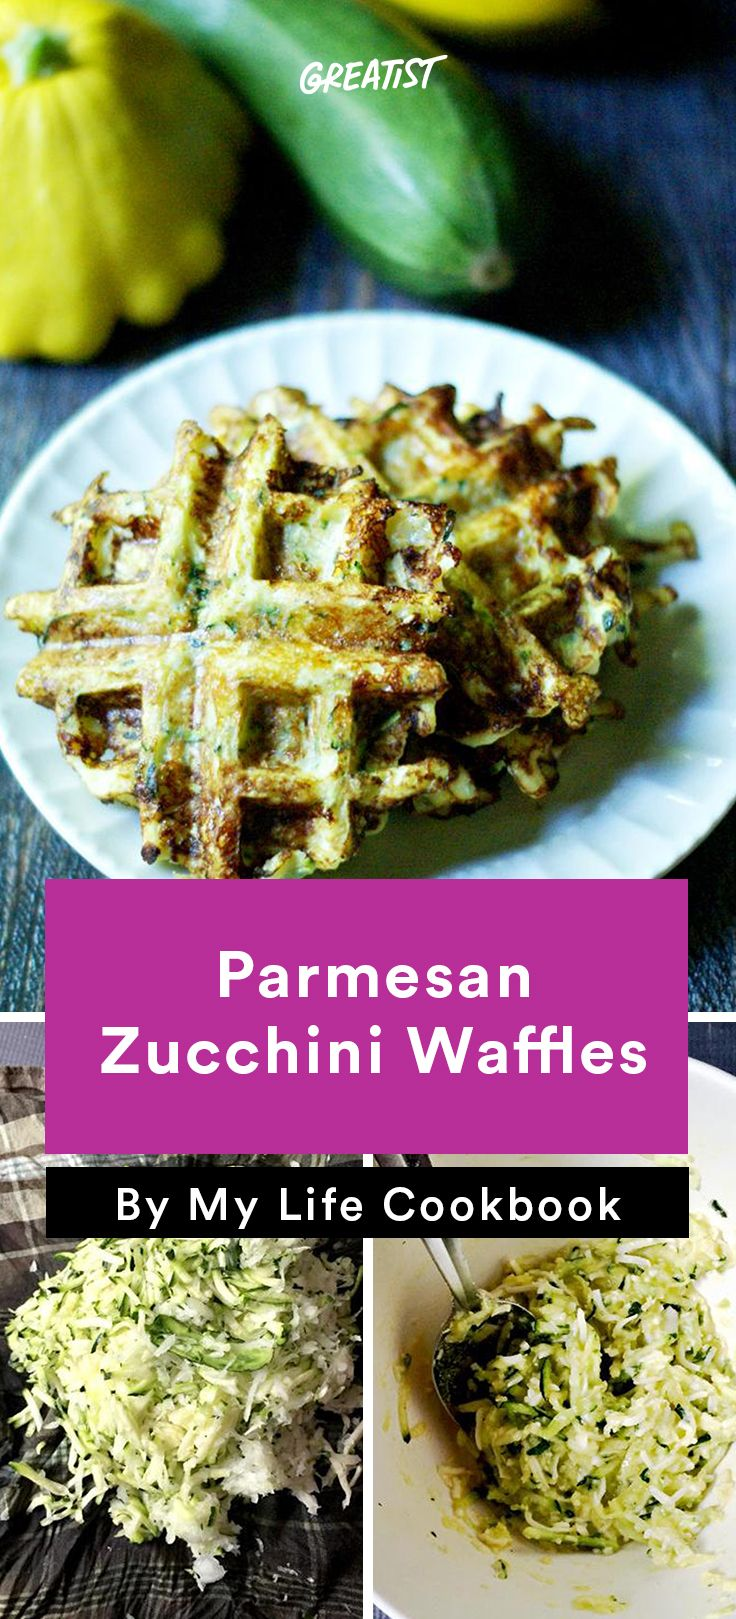 3. Parmesan Zucchini Waffles #healthy #zucchini #lowcarb #recipes http://greatist.com/eat/low-carb-zucchini-recipes